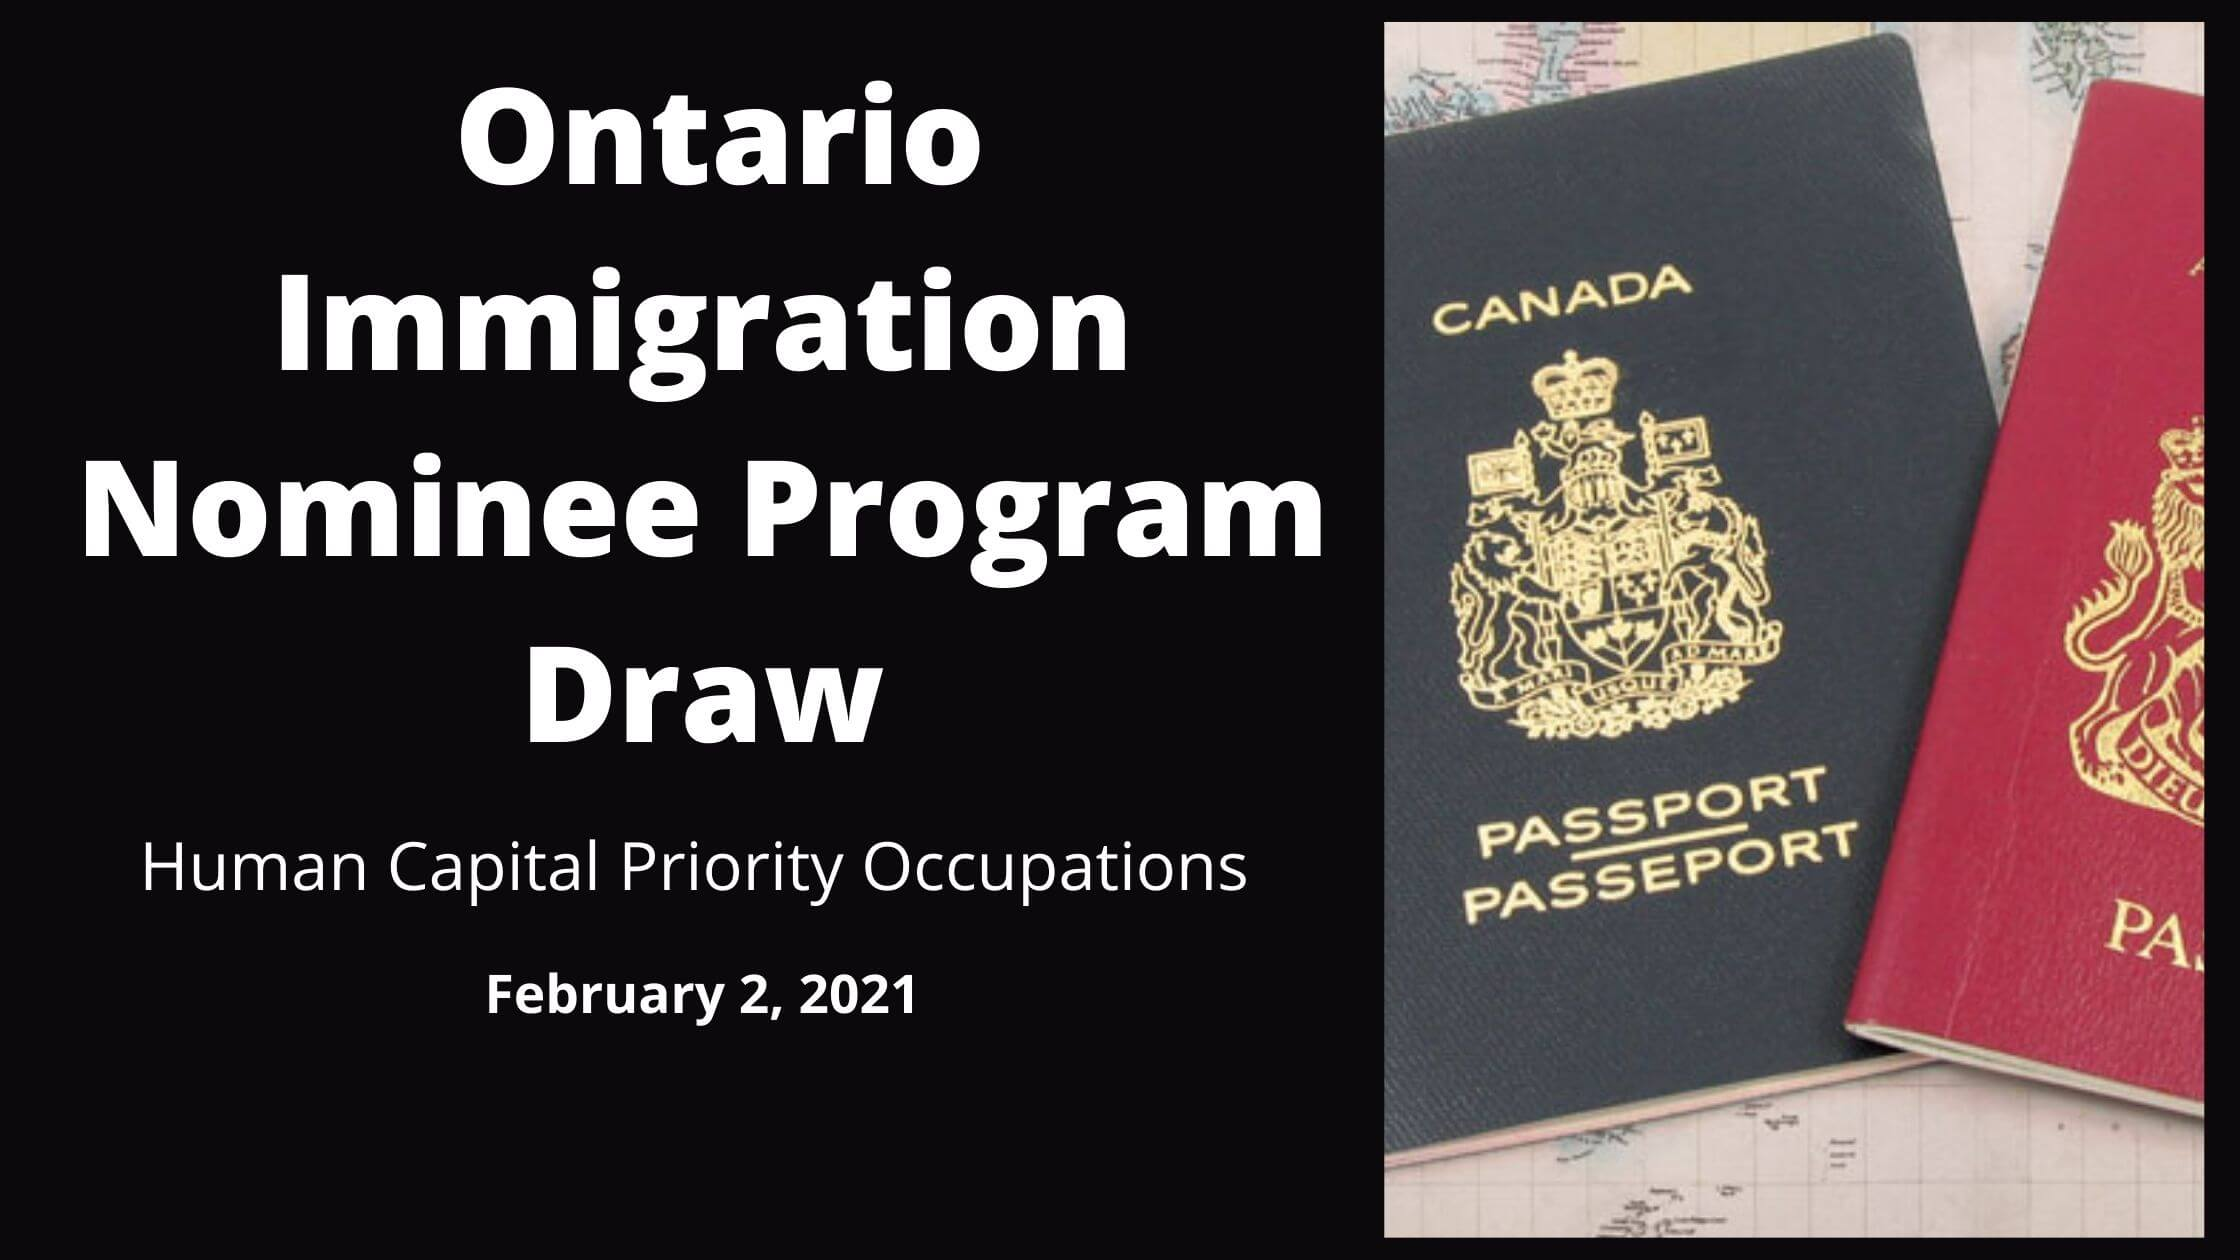 Ontario Immigration Nominee Program Draw